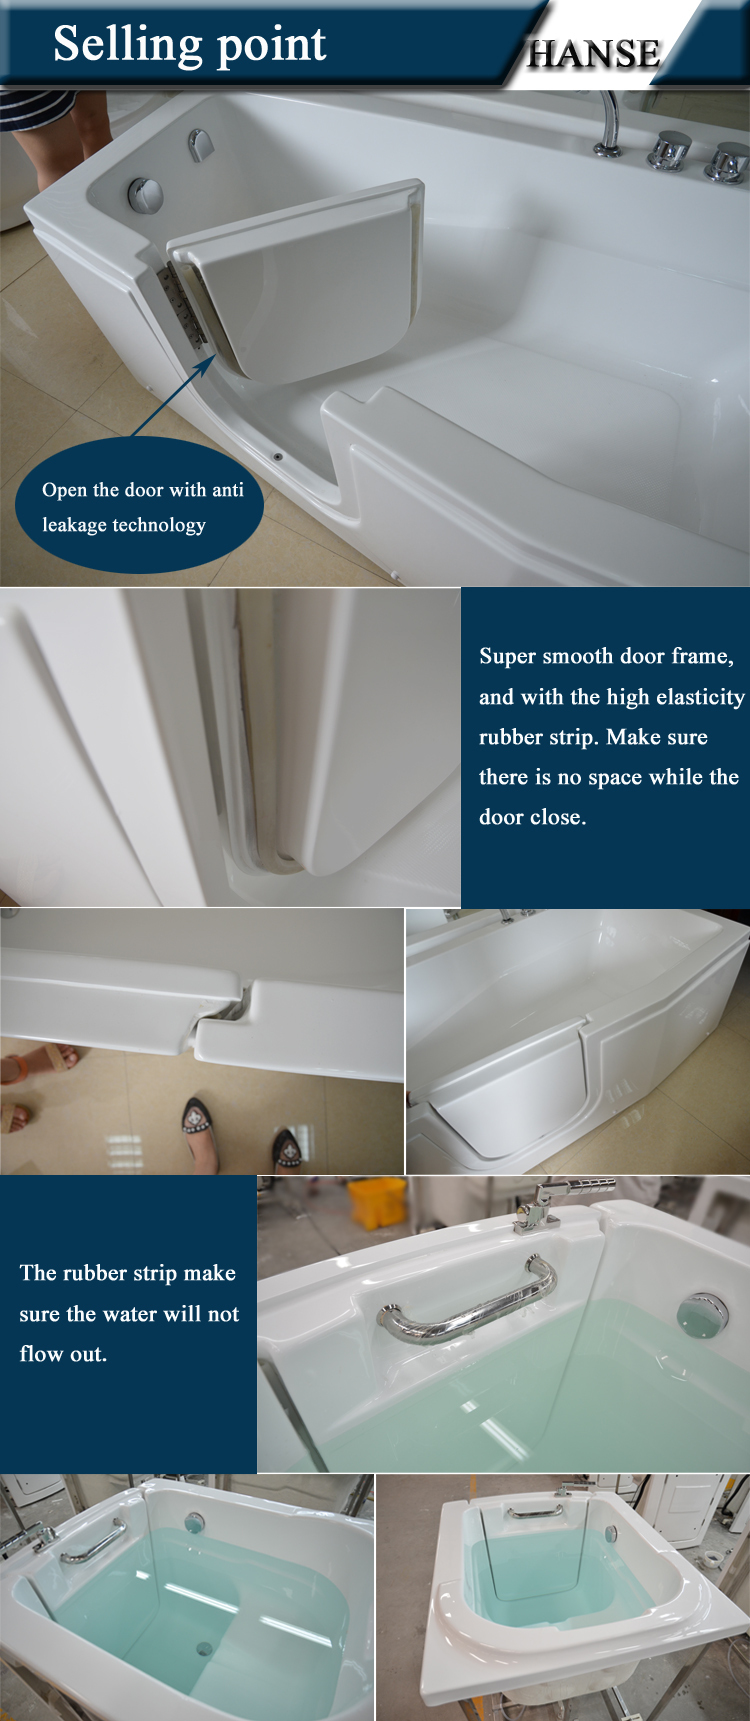 Bathtub For The Elderly Handicap Bath With Door Walk In Tub Shower Combo Bath Tub With Seat Buy Handicap Bath Bathtub For The Elderly Walk In Tub